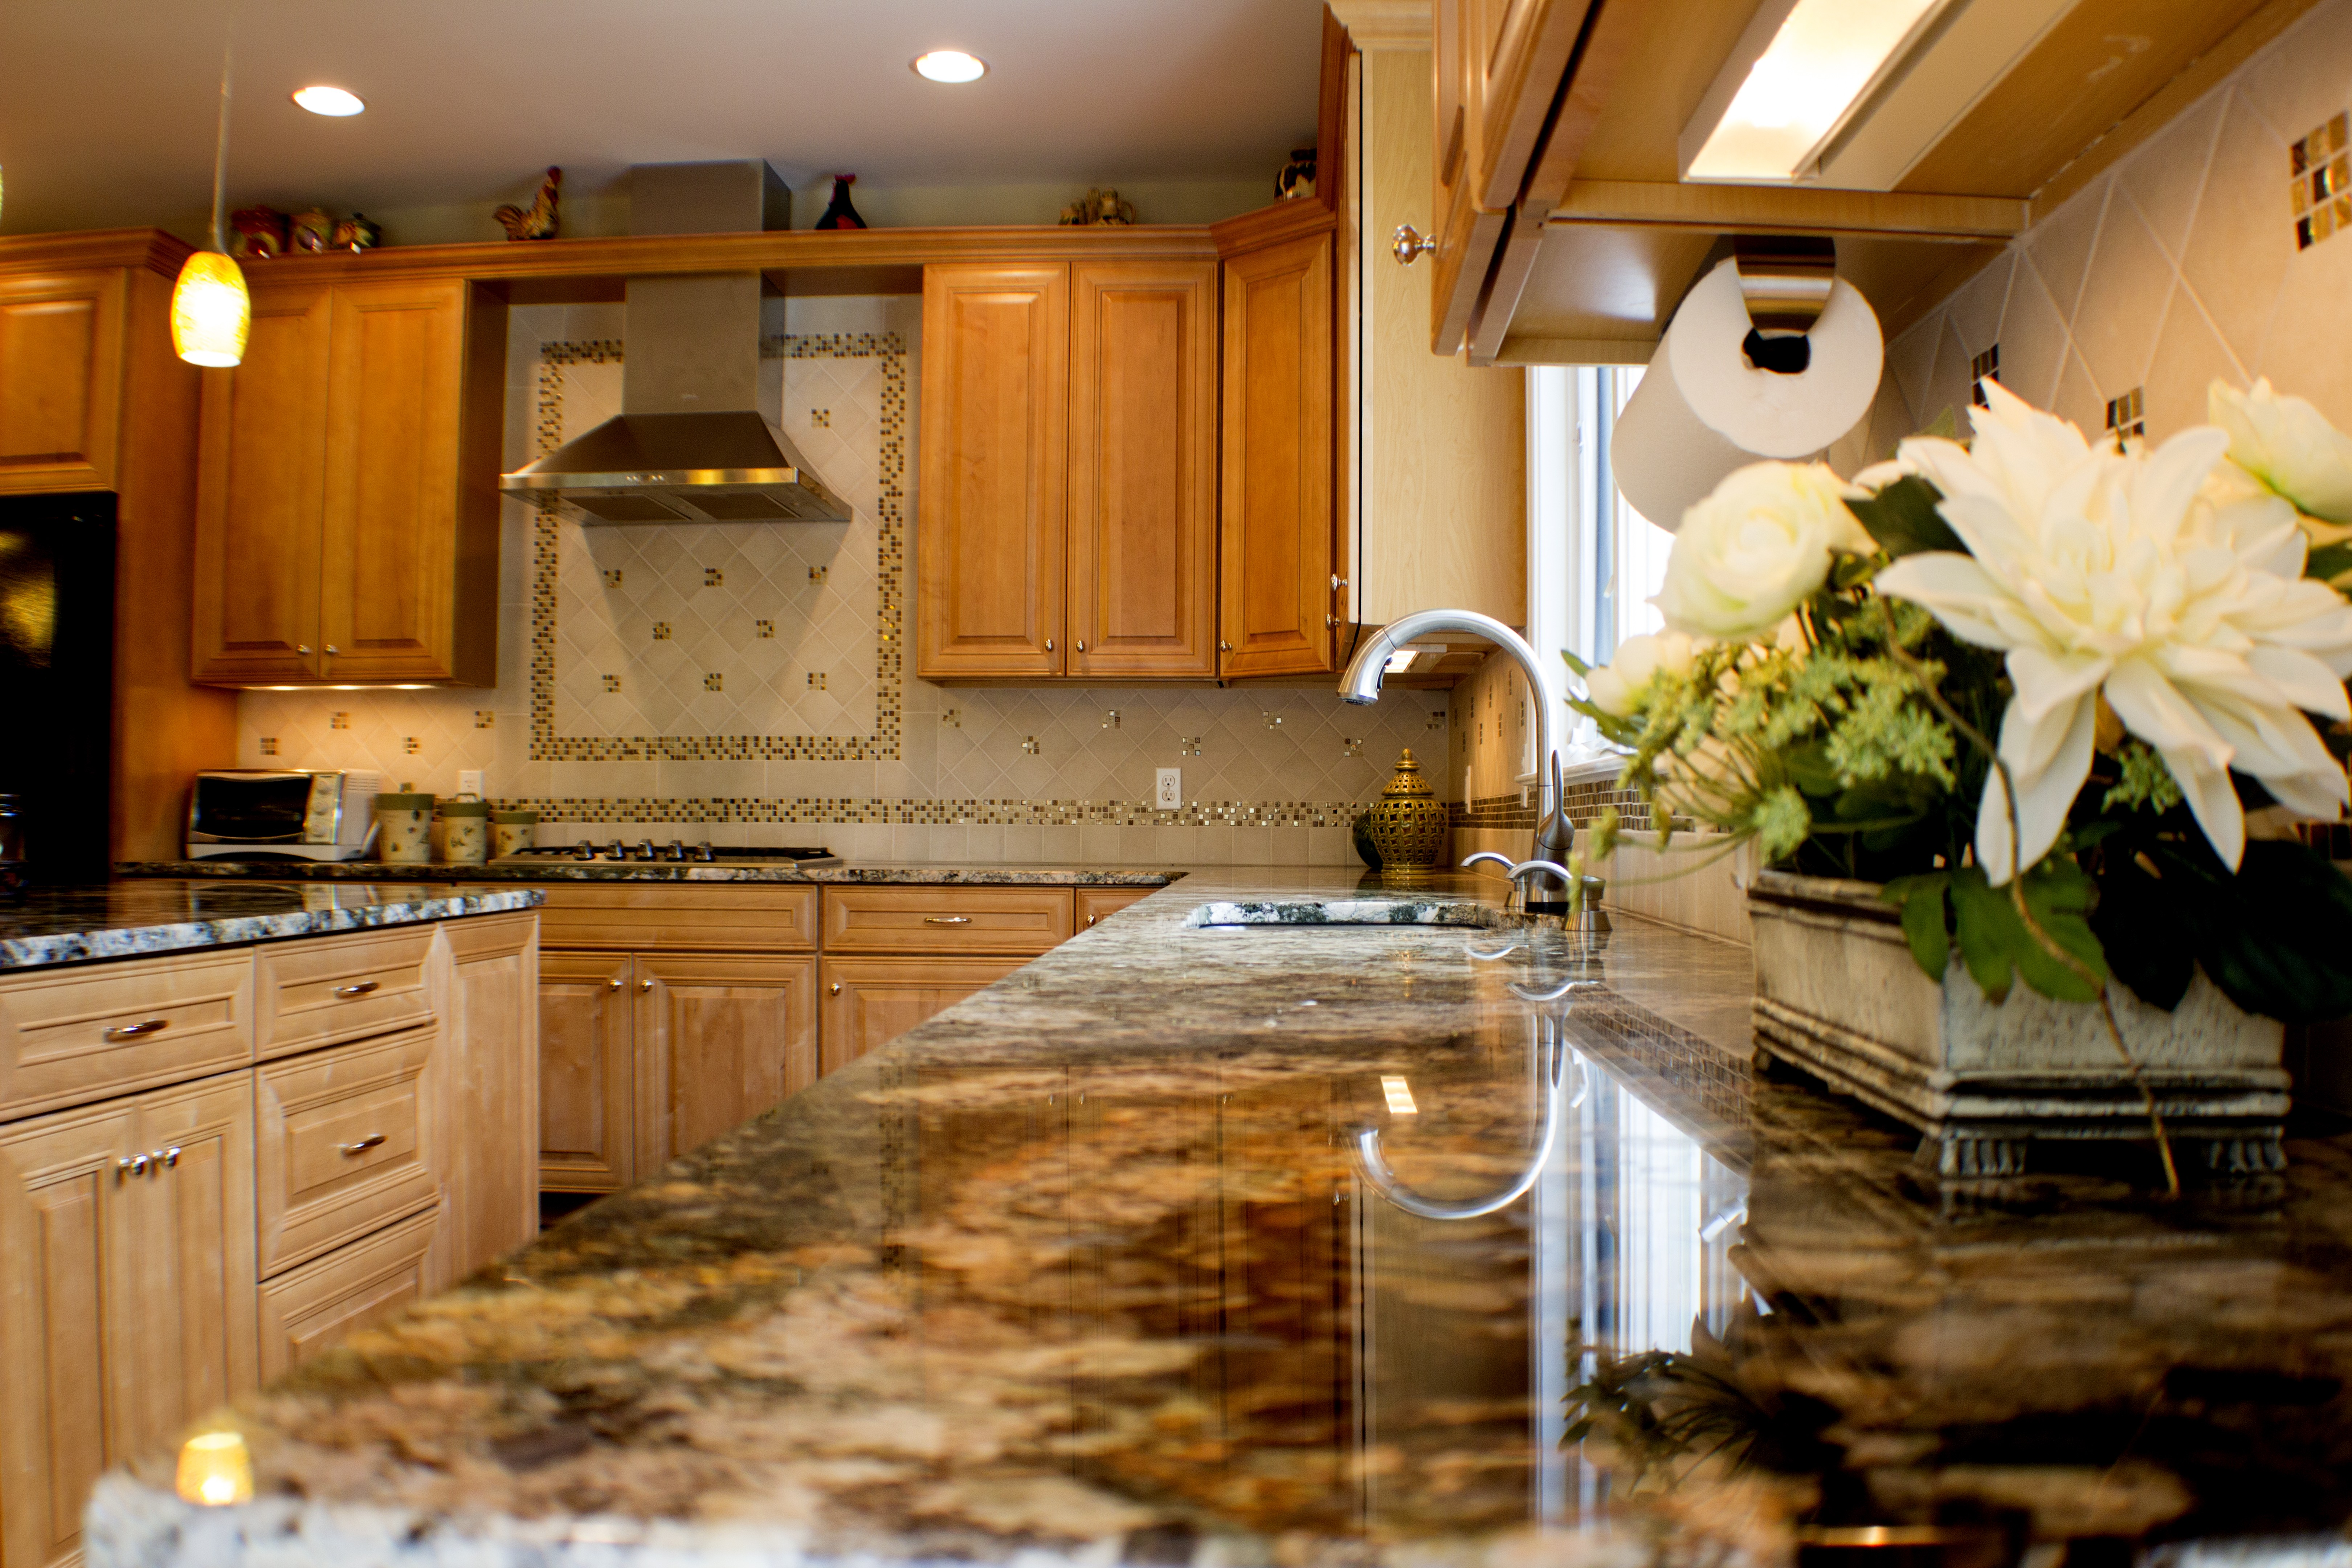 Kitchen Remodeling Nj Ideas Adorable Nj Kitchen Remodeling Questions And Answers From The Pros Decorating Design